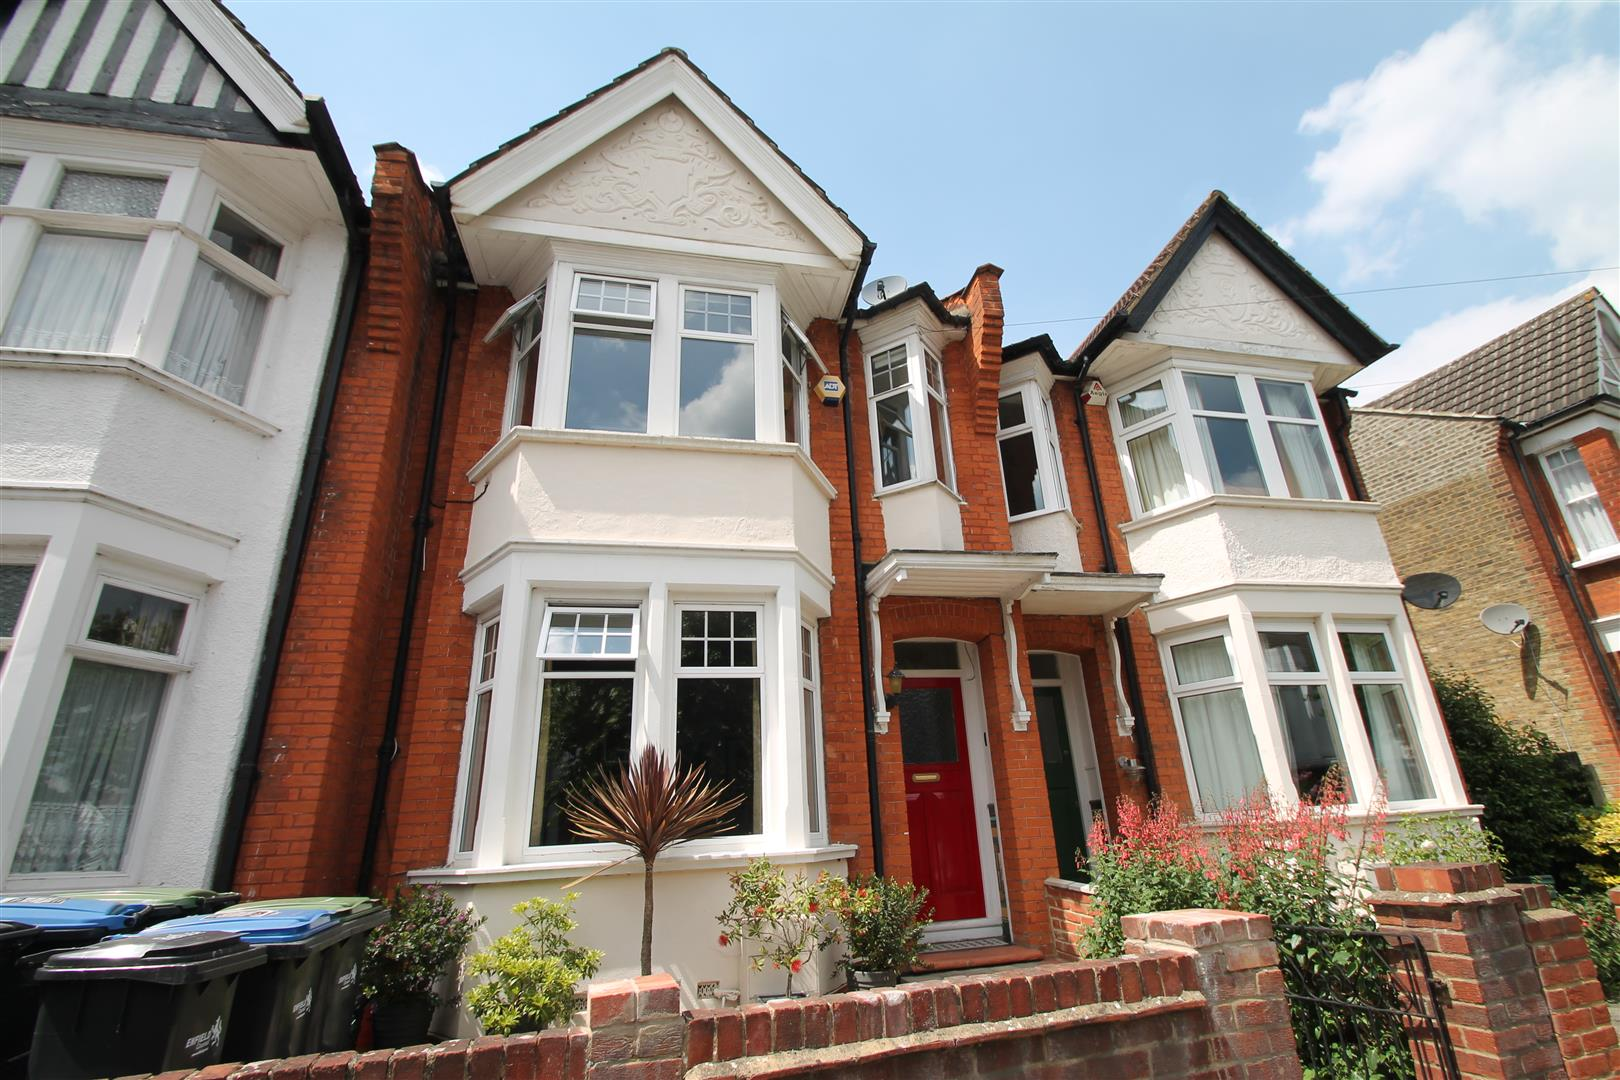 4 Bedrooms House for sale in Lightcliffe Road, Palmers Green, London N13